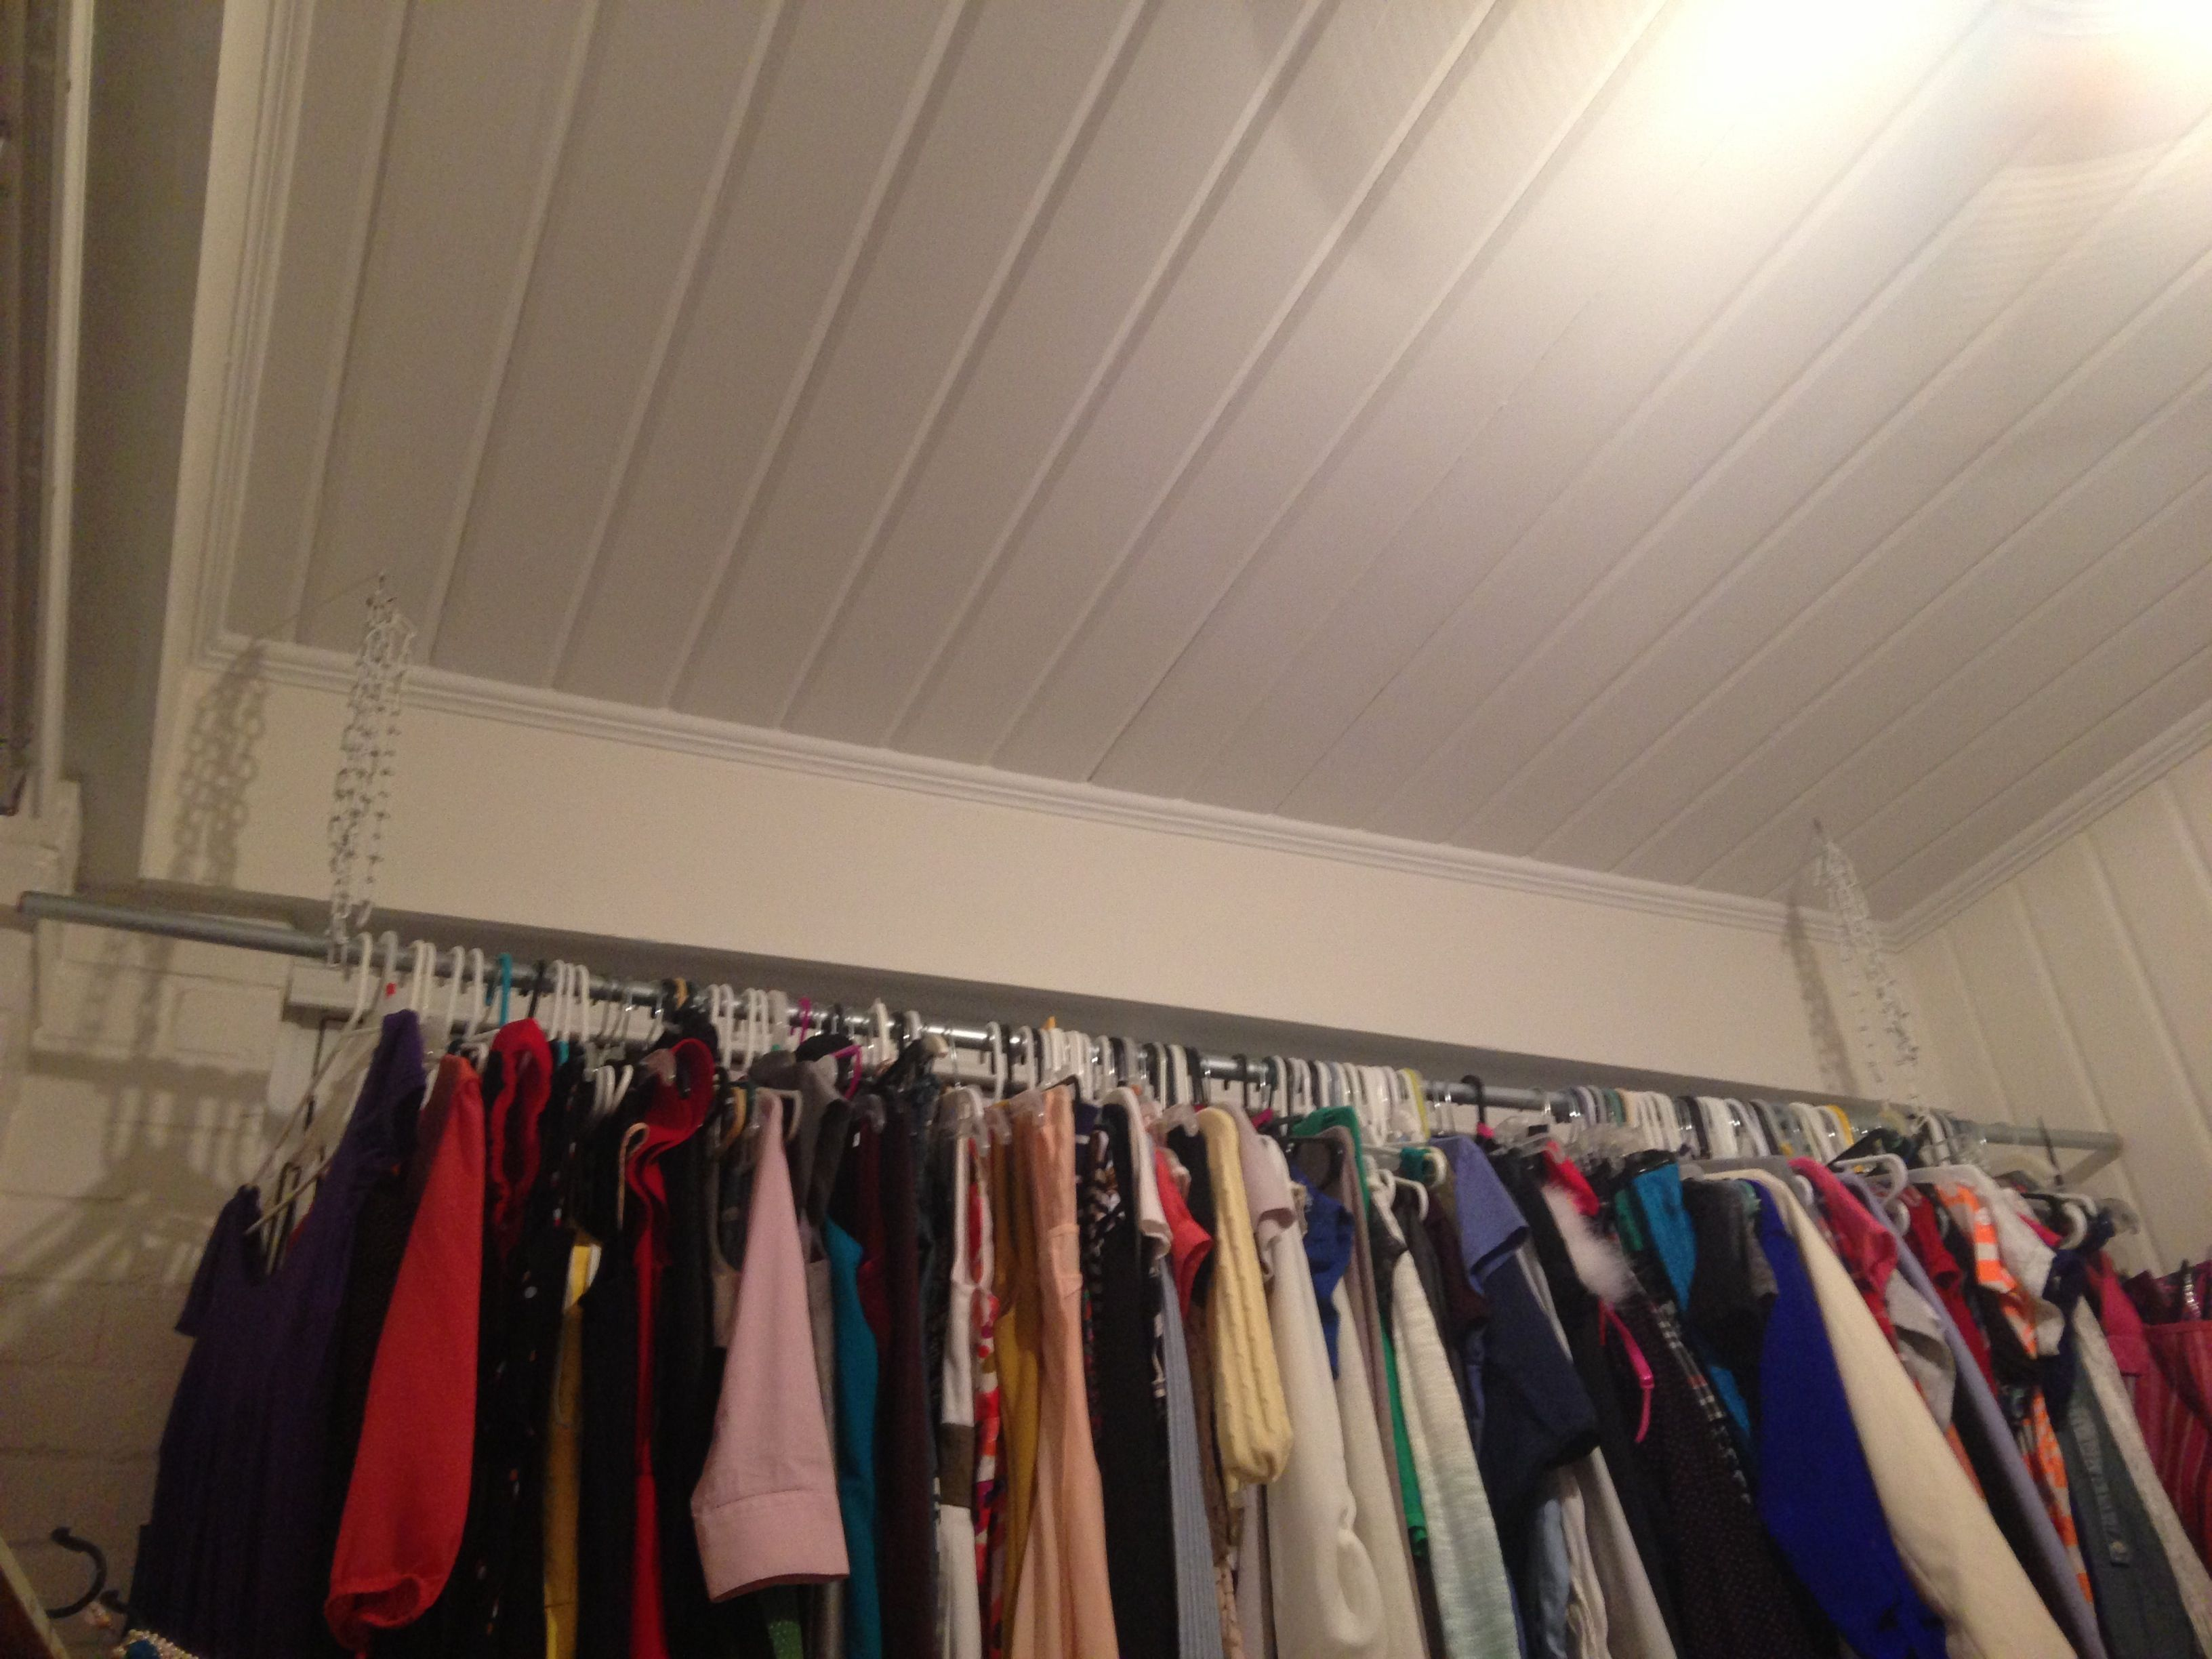 factory rails the hanging rack rail original racks black adorable full holmes in storage from or wardrobe metal ideas images shop size cream budget clothing of clothes